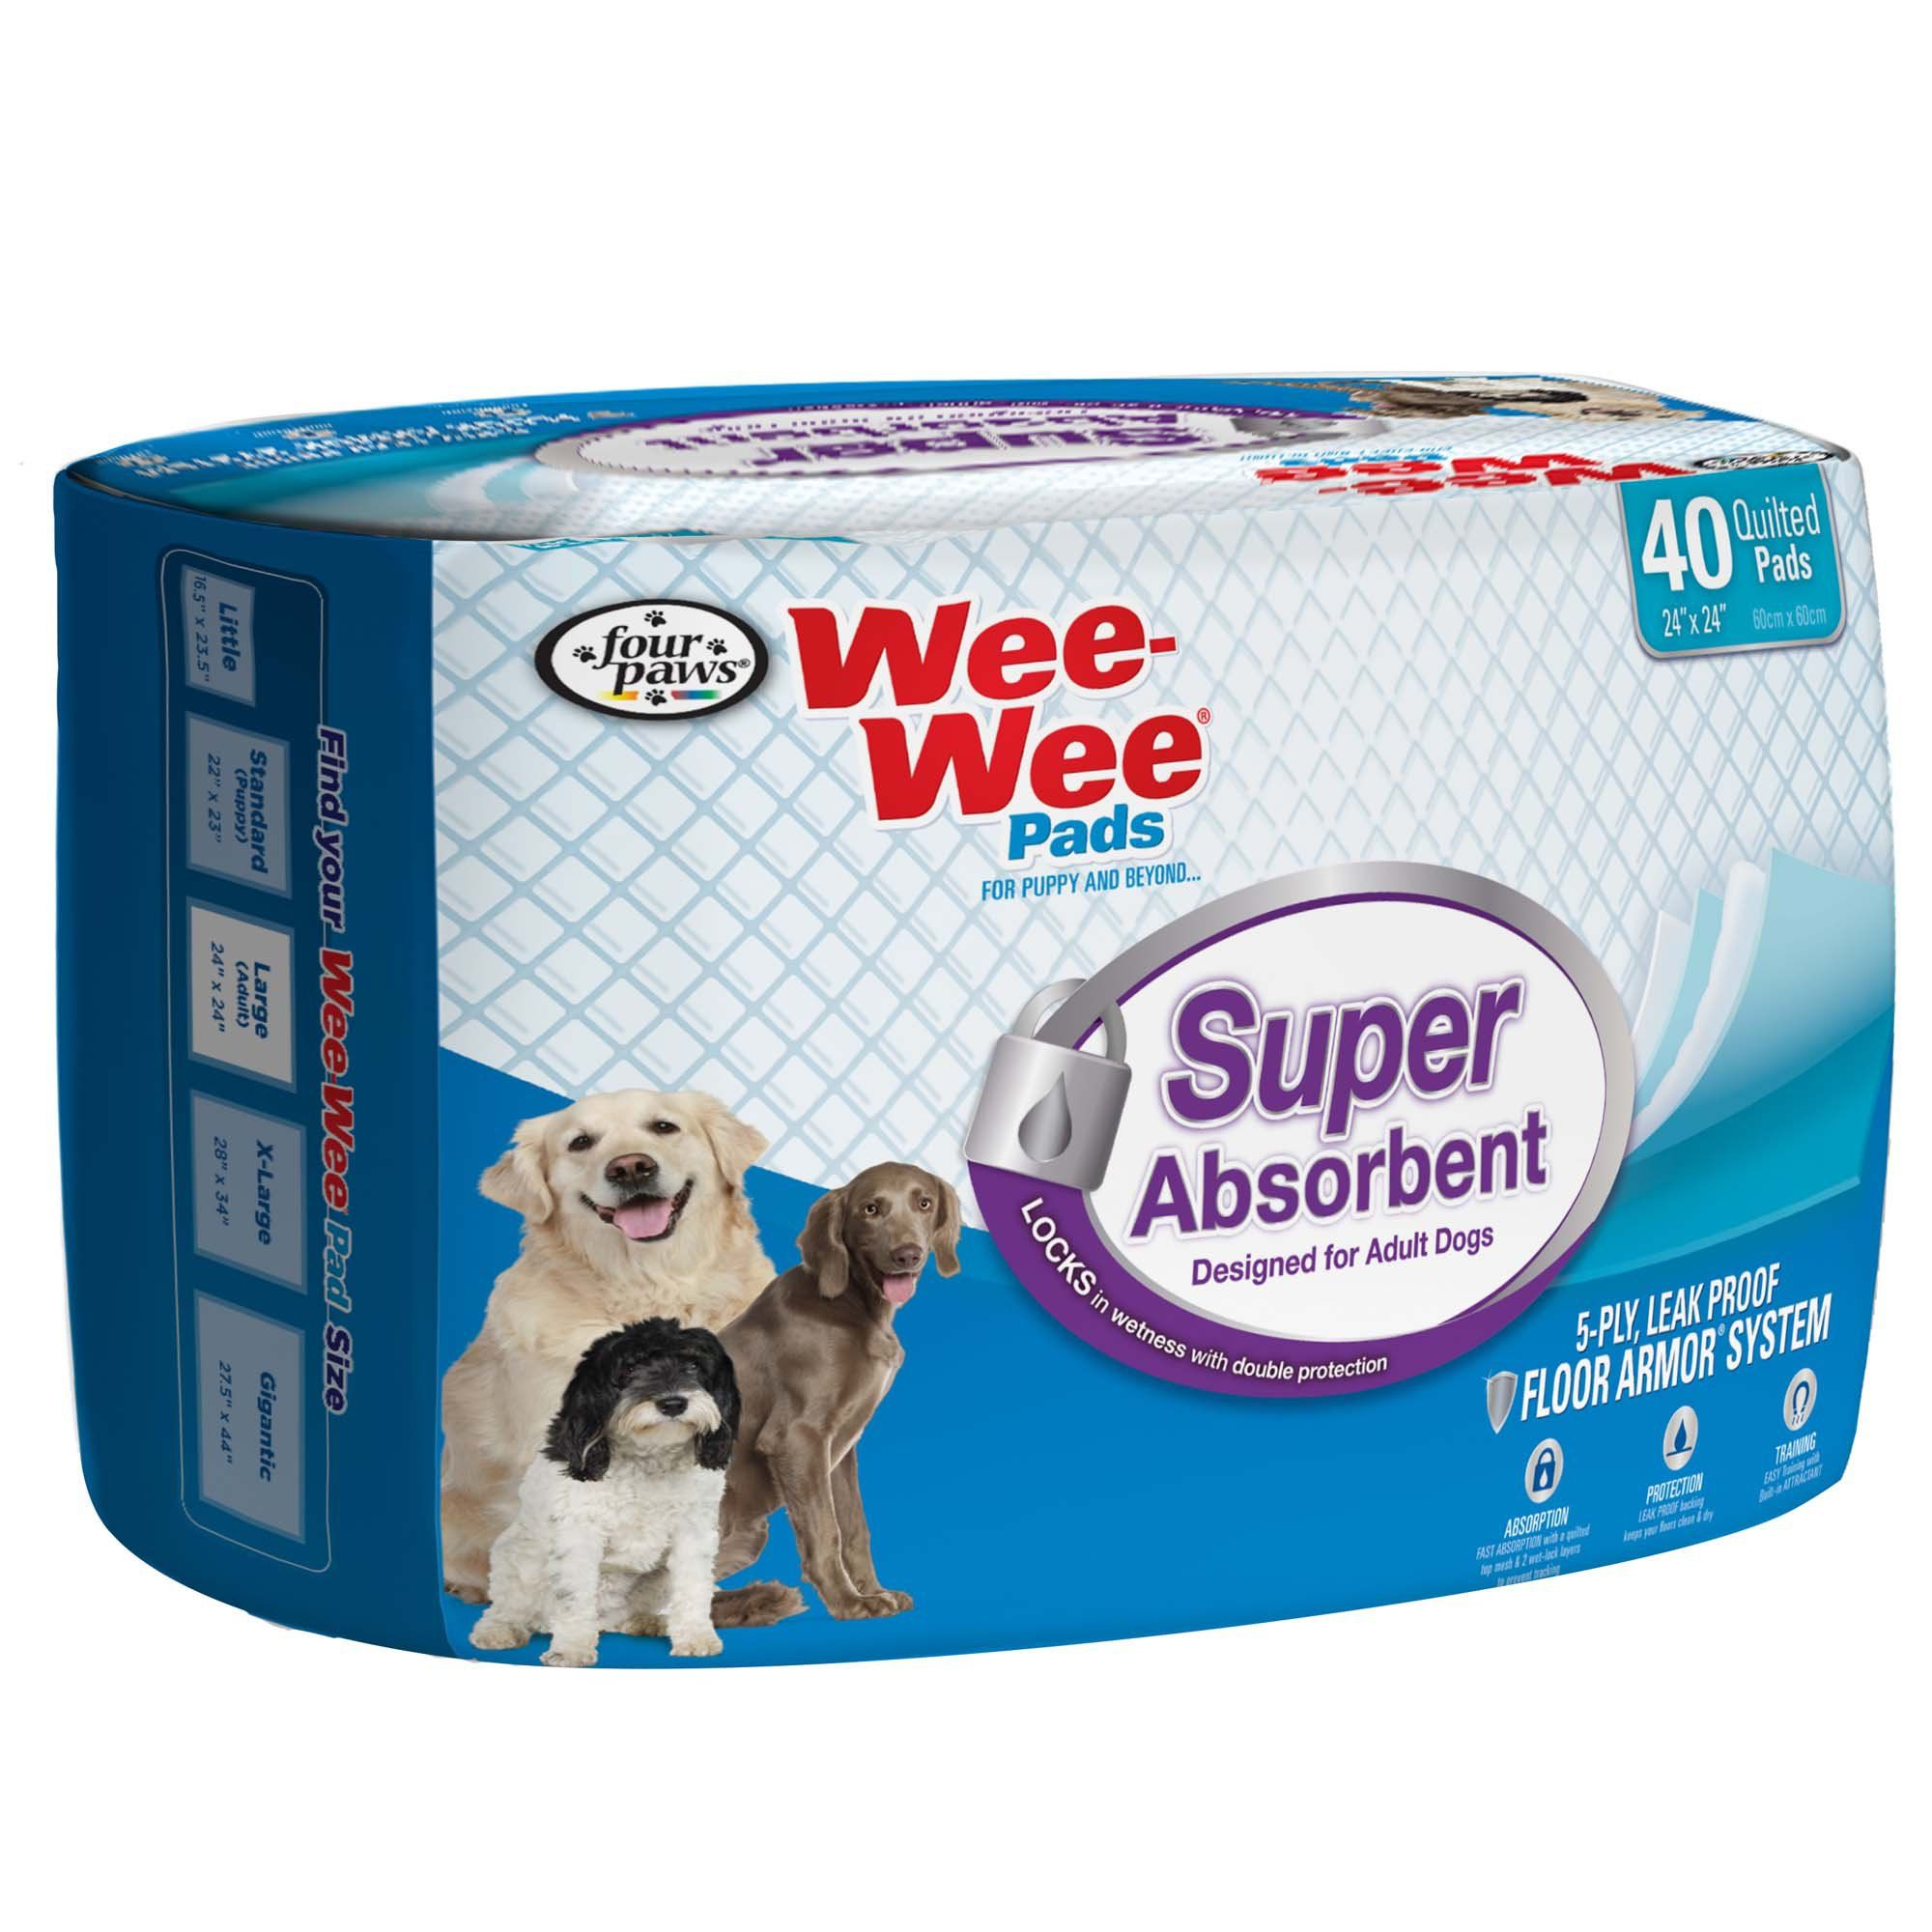 Wee Wee Super Absorbent Pack Of 40 Pads Dog Training Pads